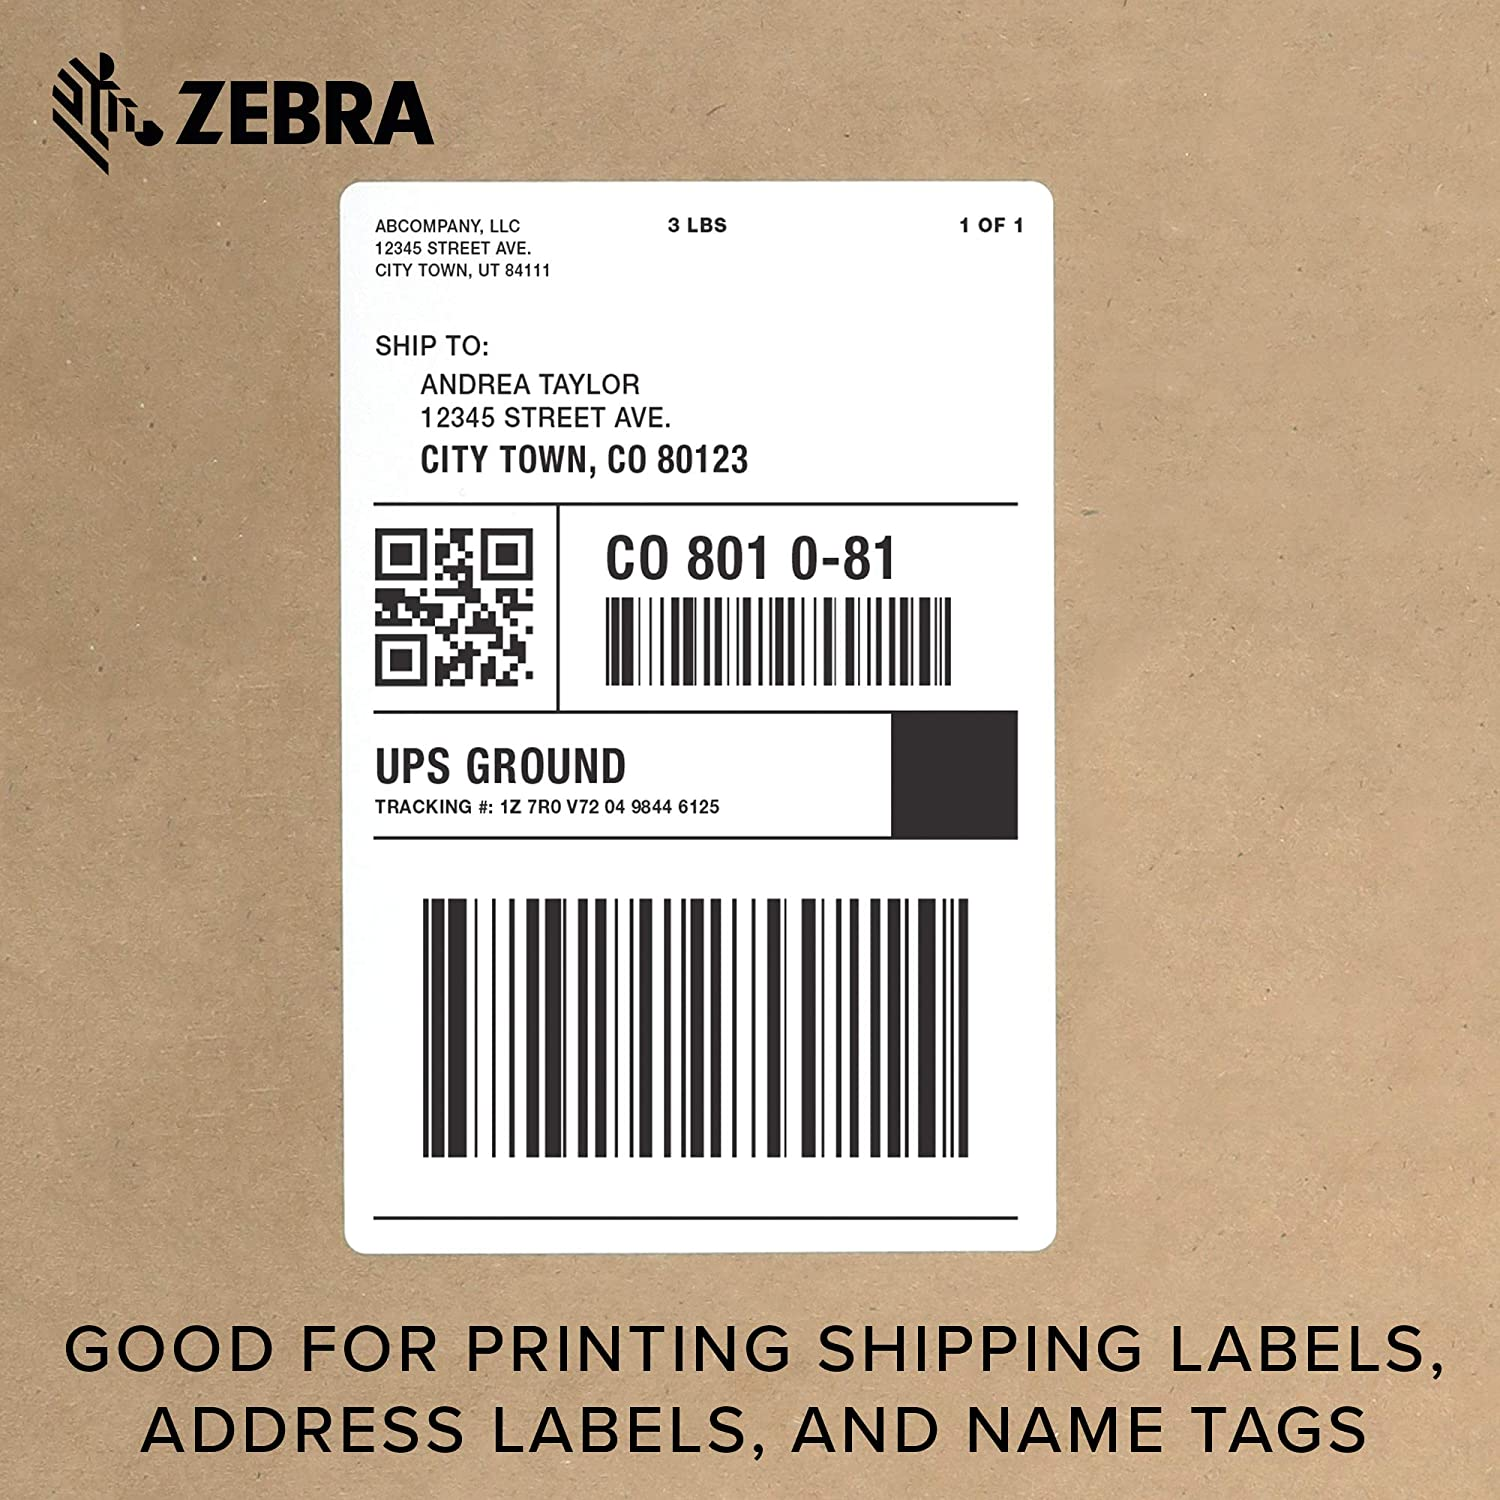 Zebra GX420d Direct Thermal Desktop Printer Print Width of 4 in USB Serial and Ethernet Port Connectivity GX42-202410-000